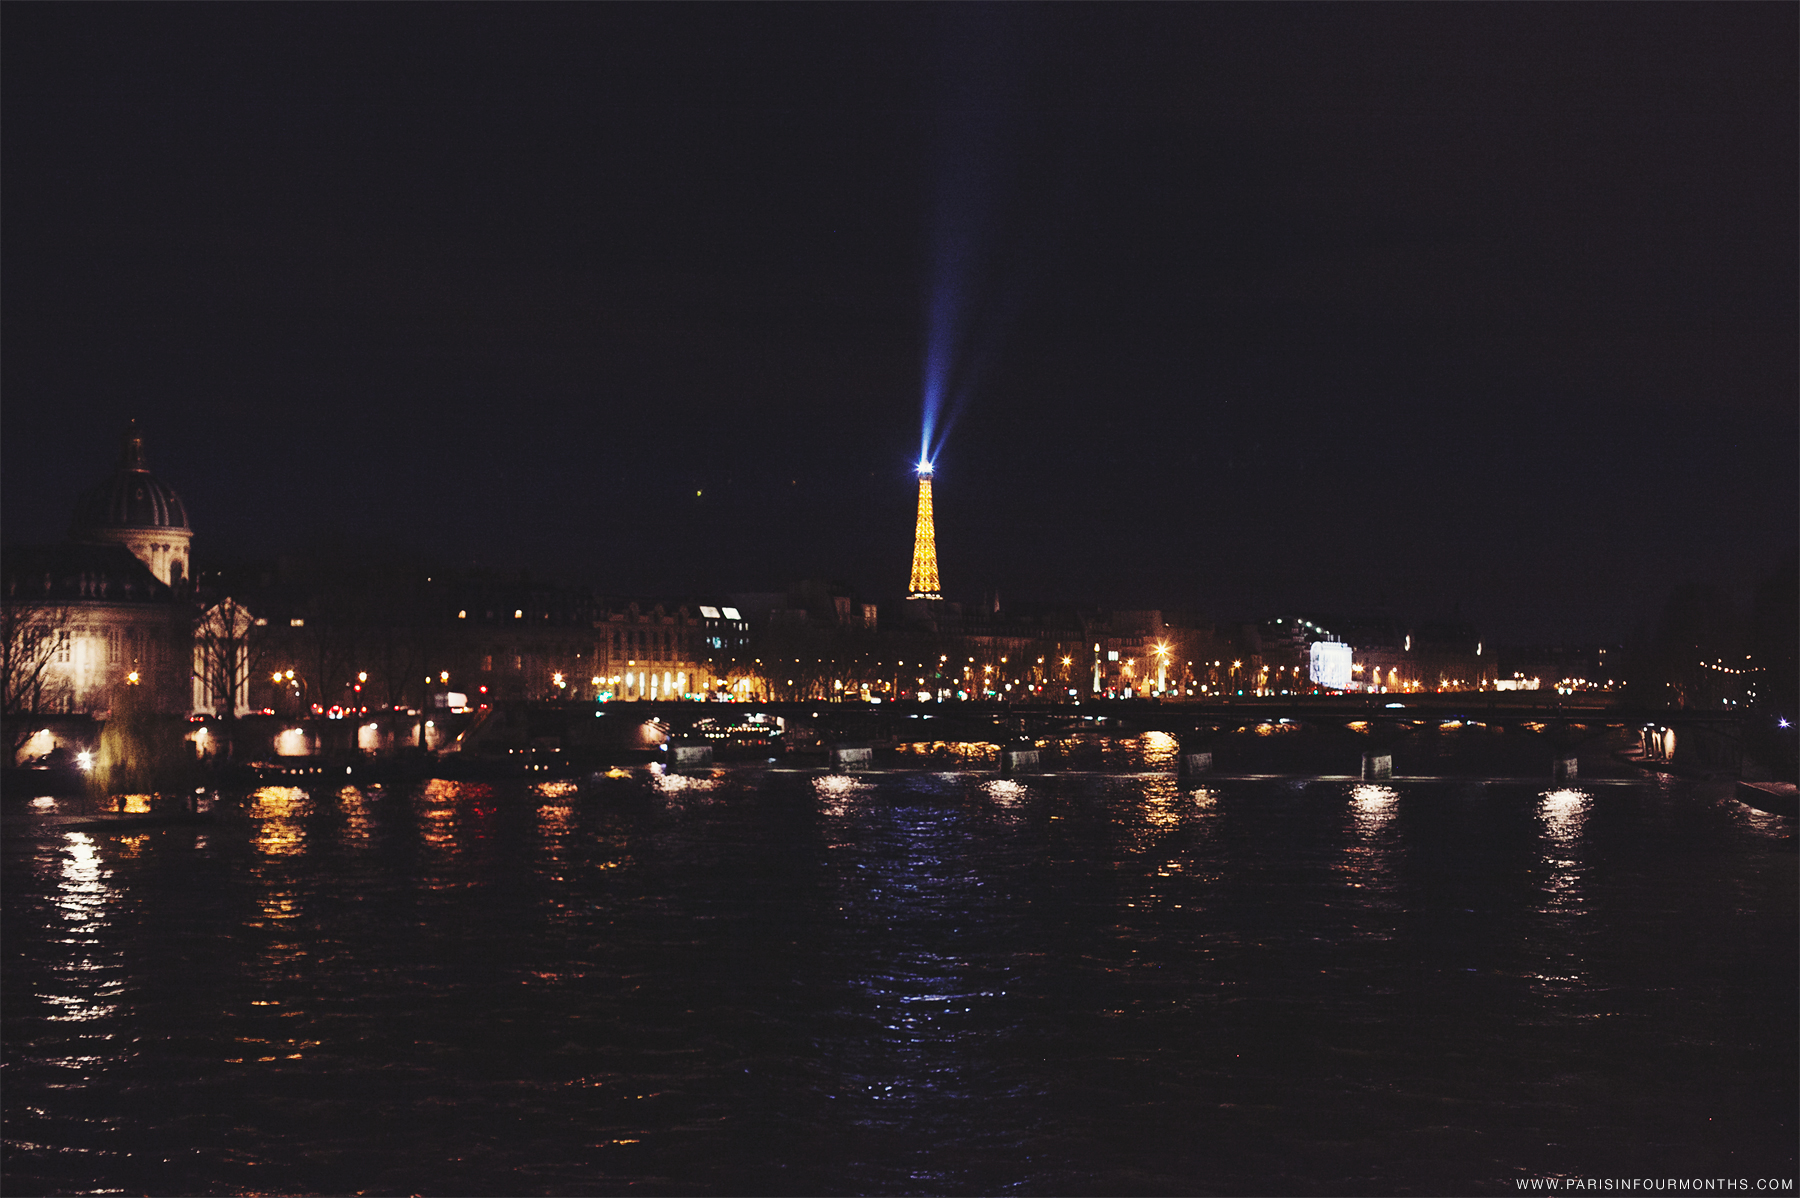 Night time in Paris by Carin Olsson (Paris in Four Months)